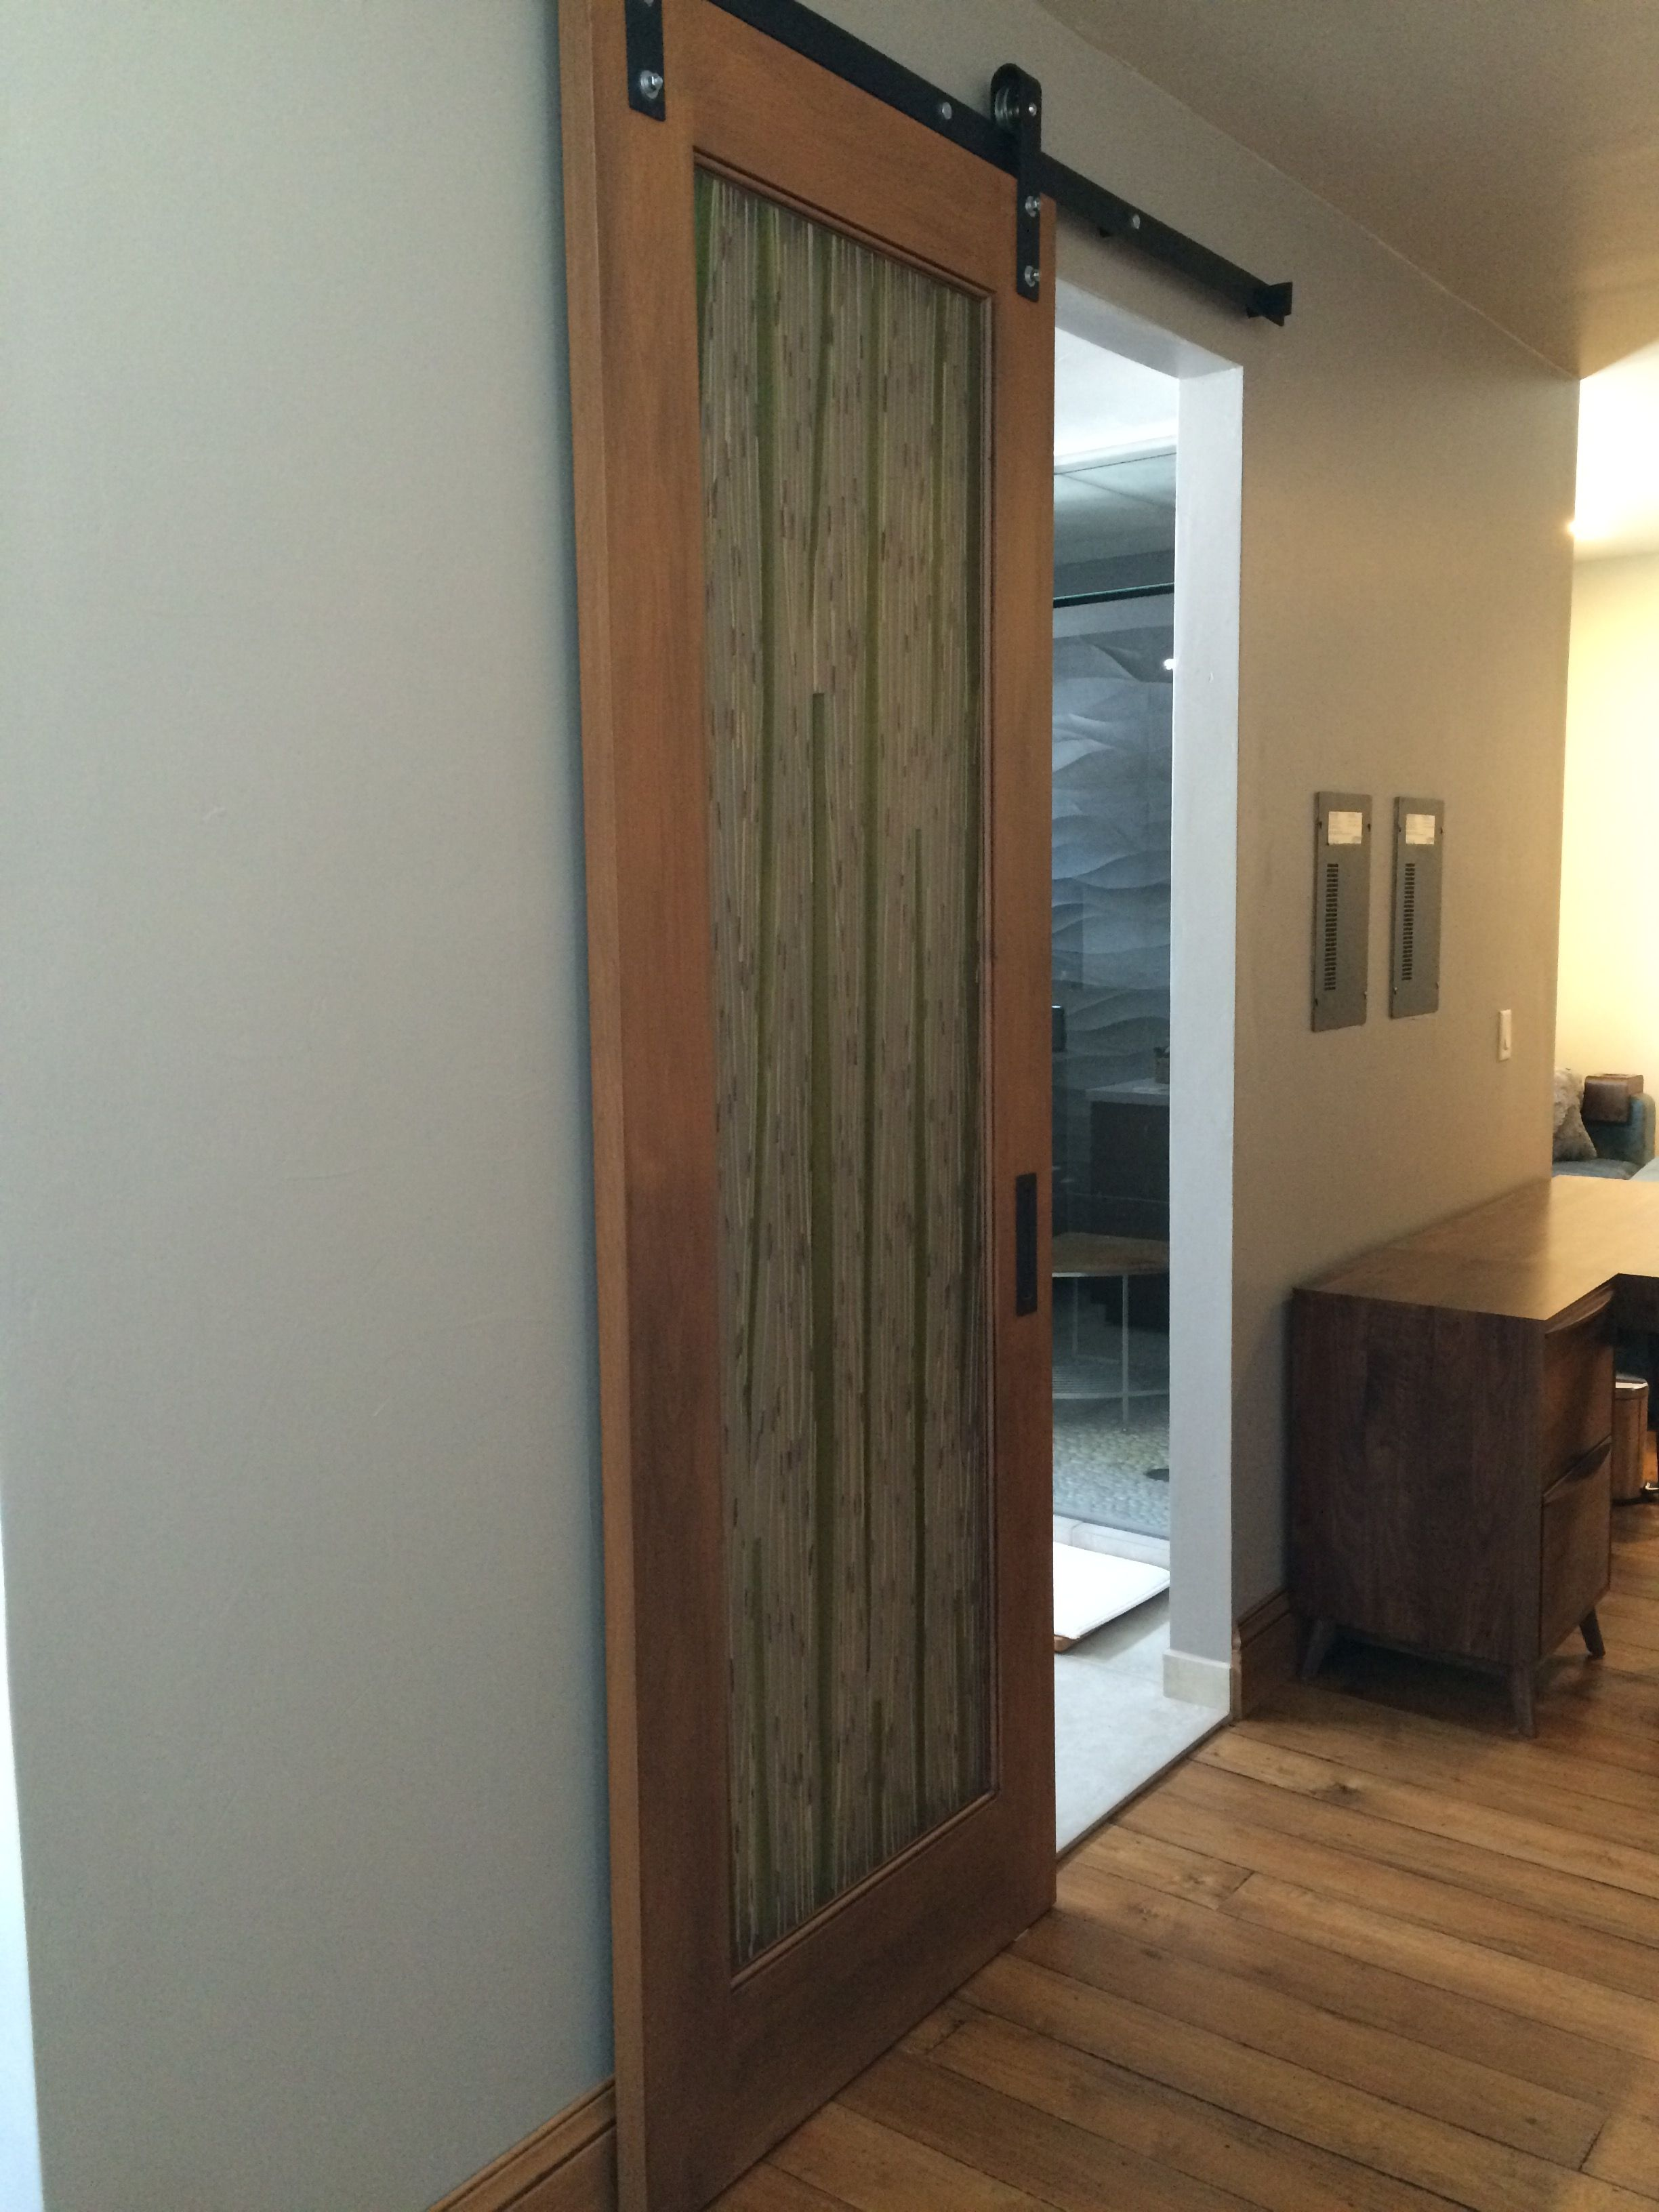 Sliding Barn Door, 3 Form Bamboo Arcturus Studio Interior Design